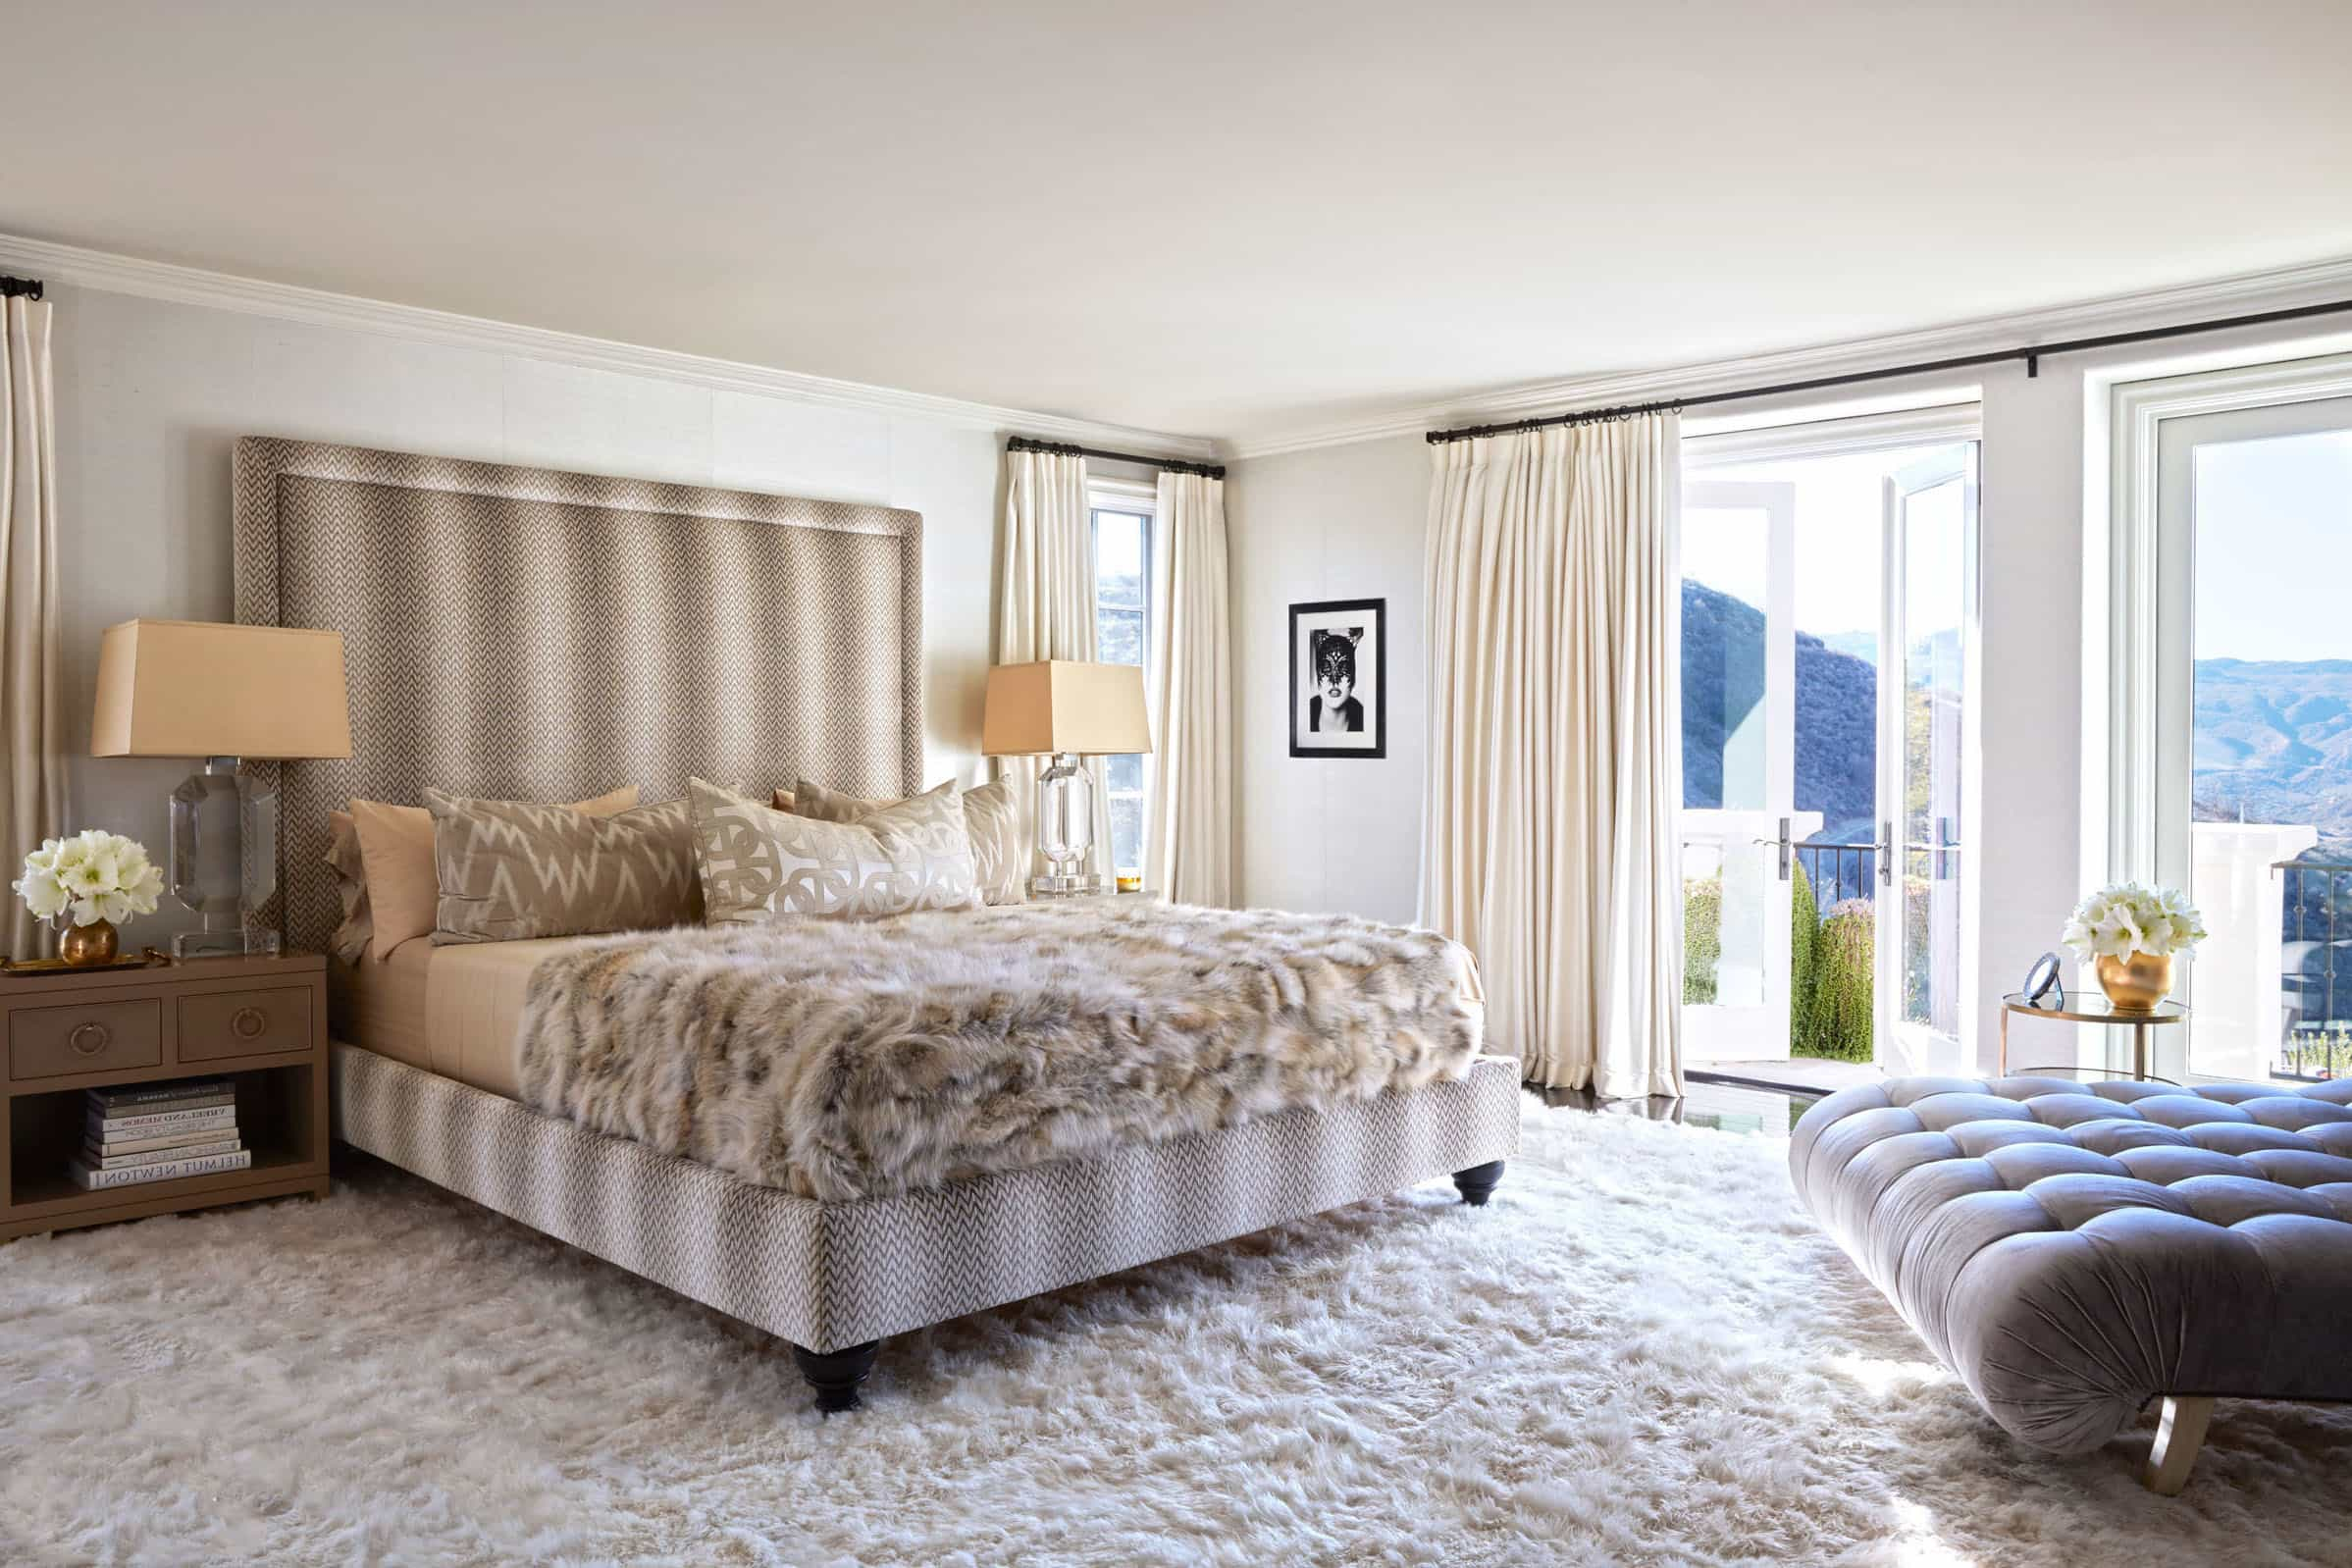 Glamour Celebrity Inspired Bedroom Design (Image 13 of 20)